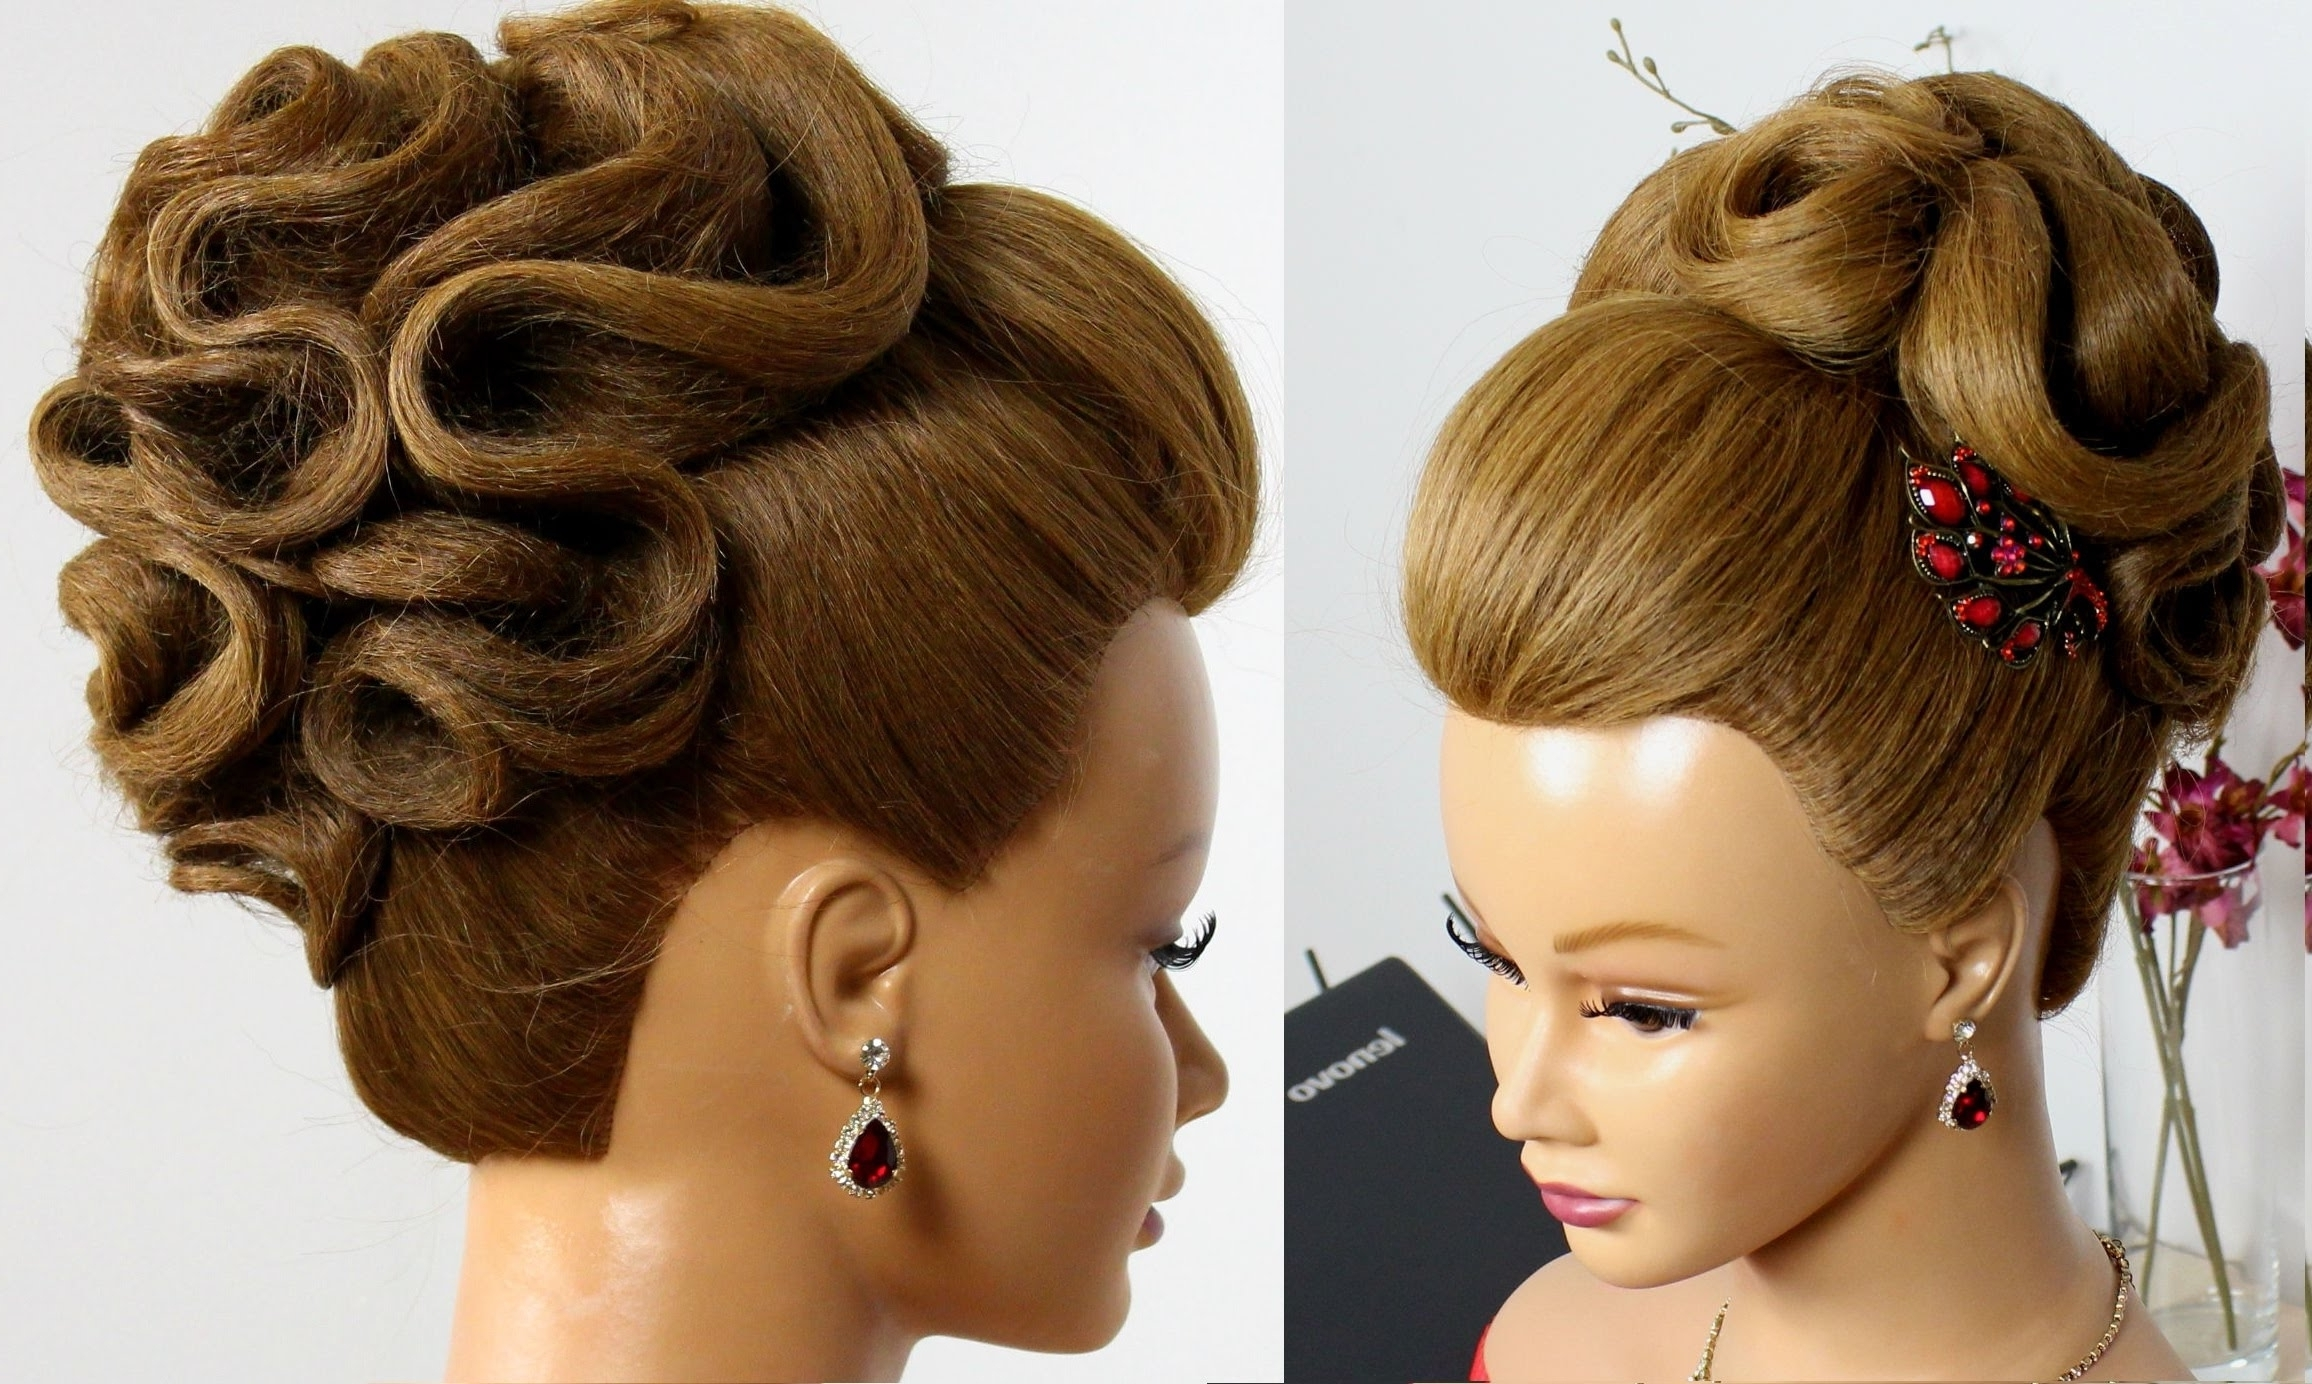 Sleek And Smooth Updo Classic Bun Low Bun Finger Waves Chignon Ideas Pertaining To Finger Waves Long Hair Updo Hairstyles (View 10 of 15)